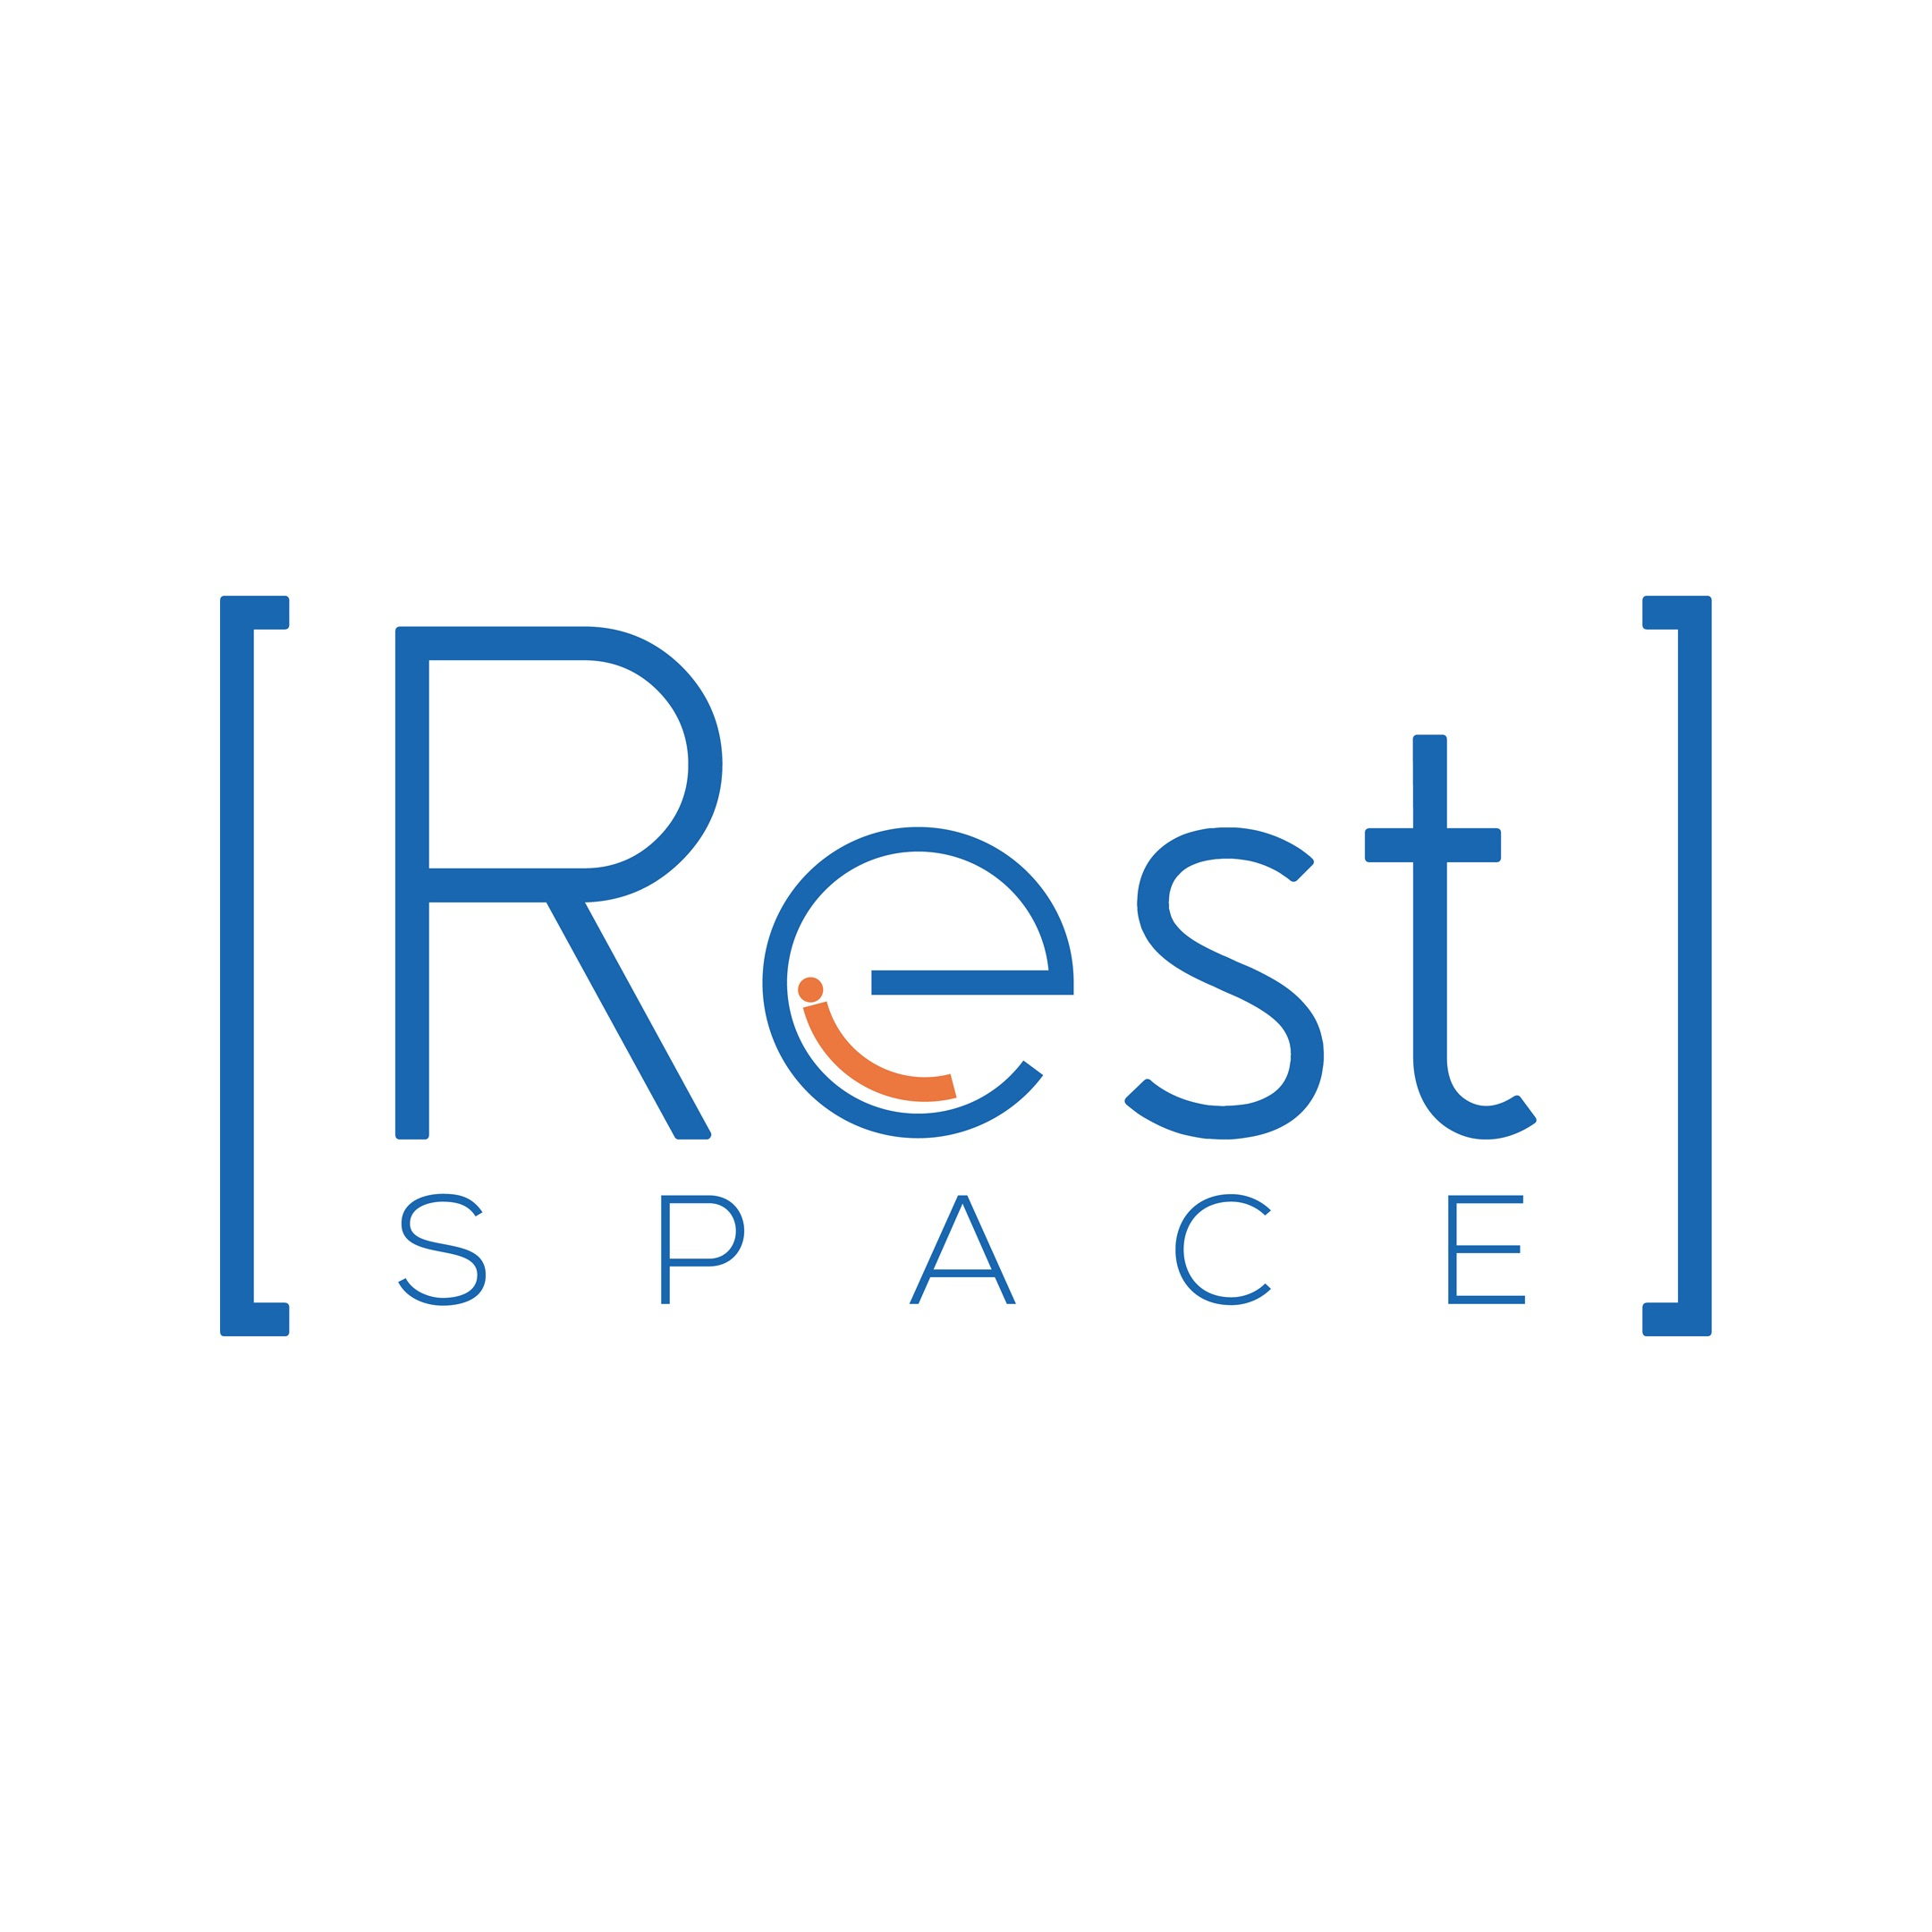 Rest Space logo